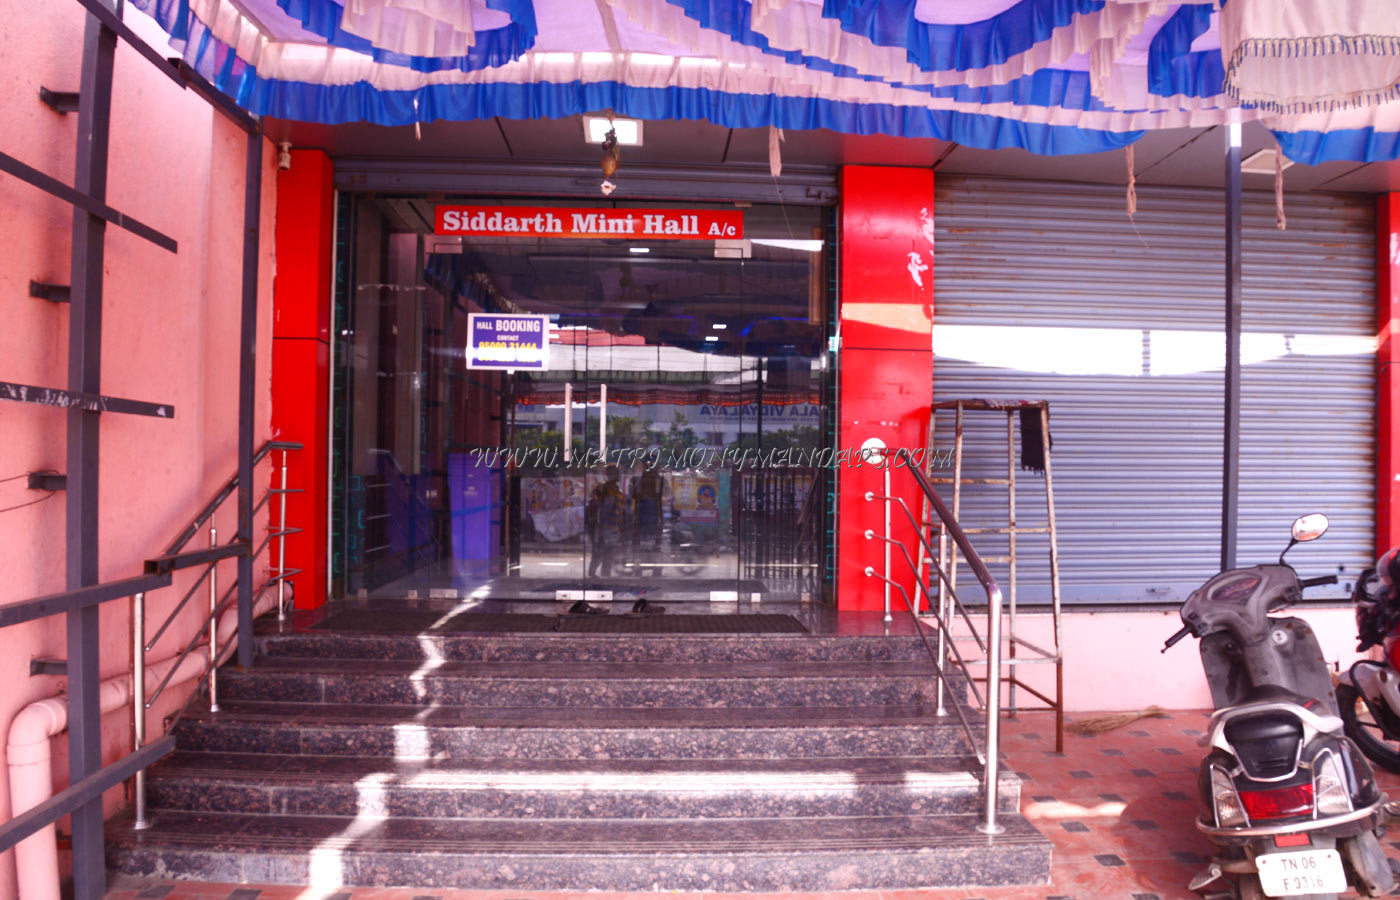 Find the availability of the Siddarth Mini Hall (A/C) in Perambur, Chennai and avail special offers